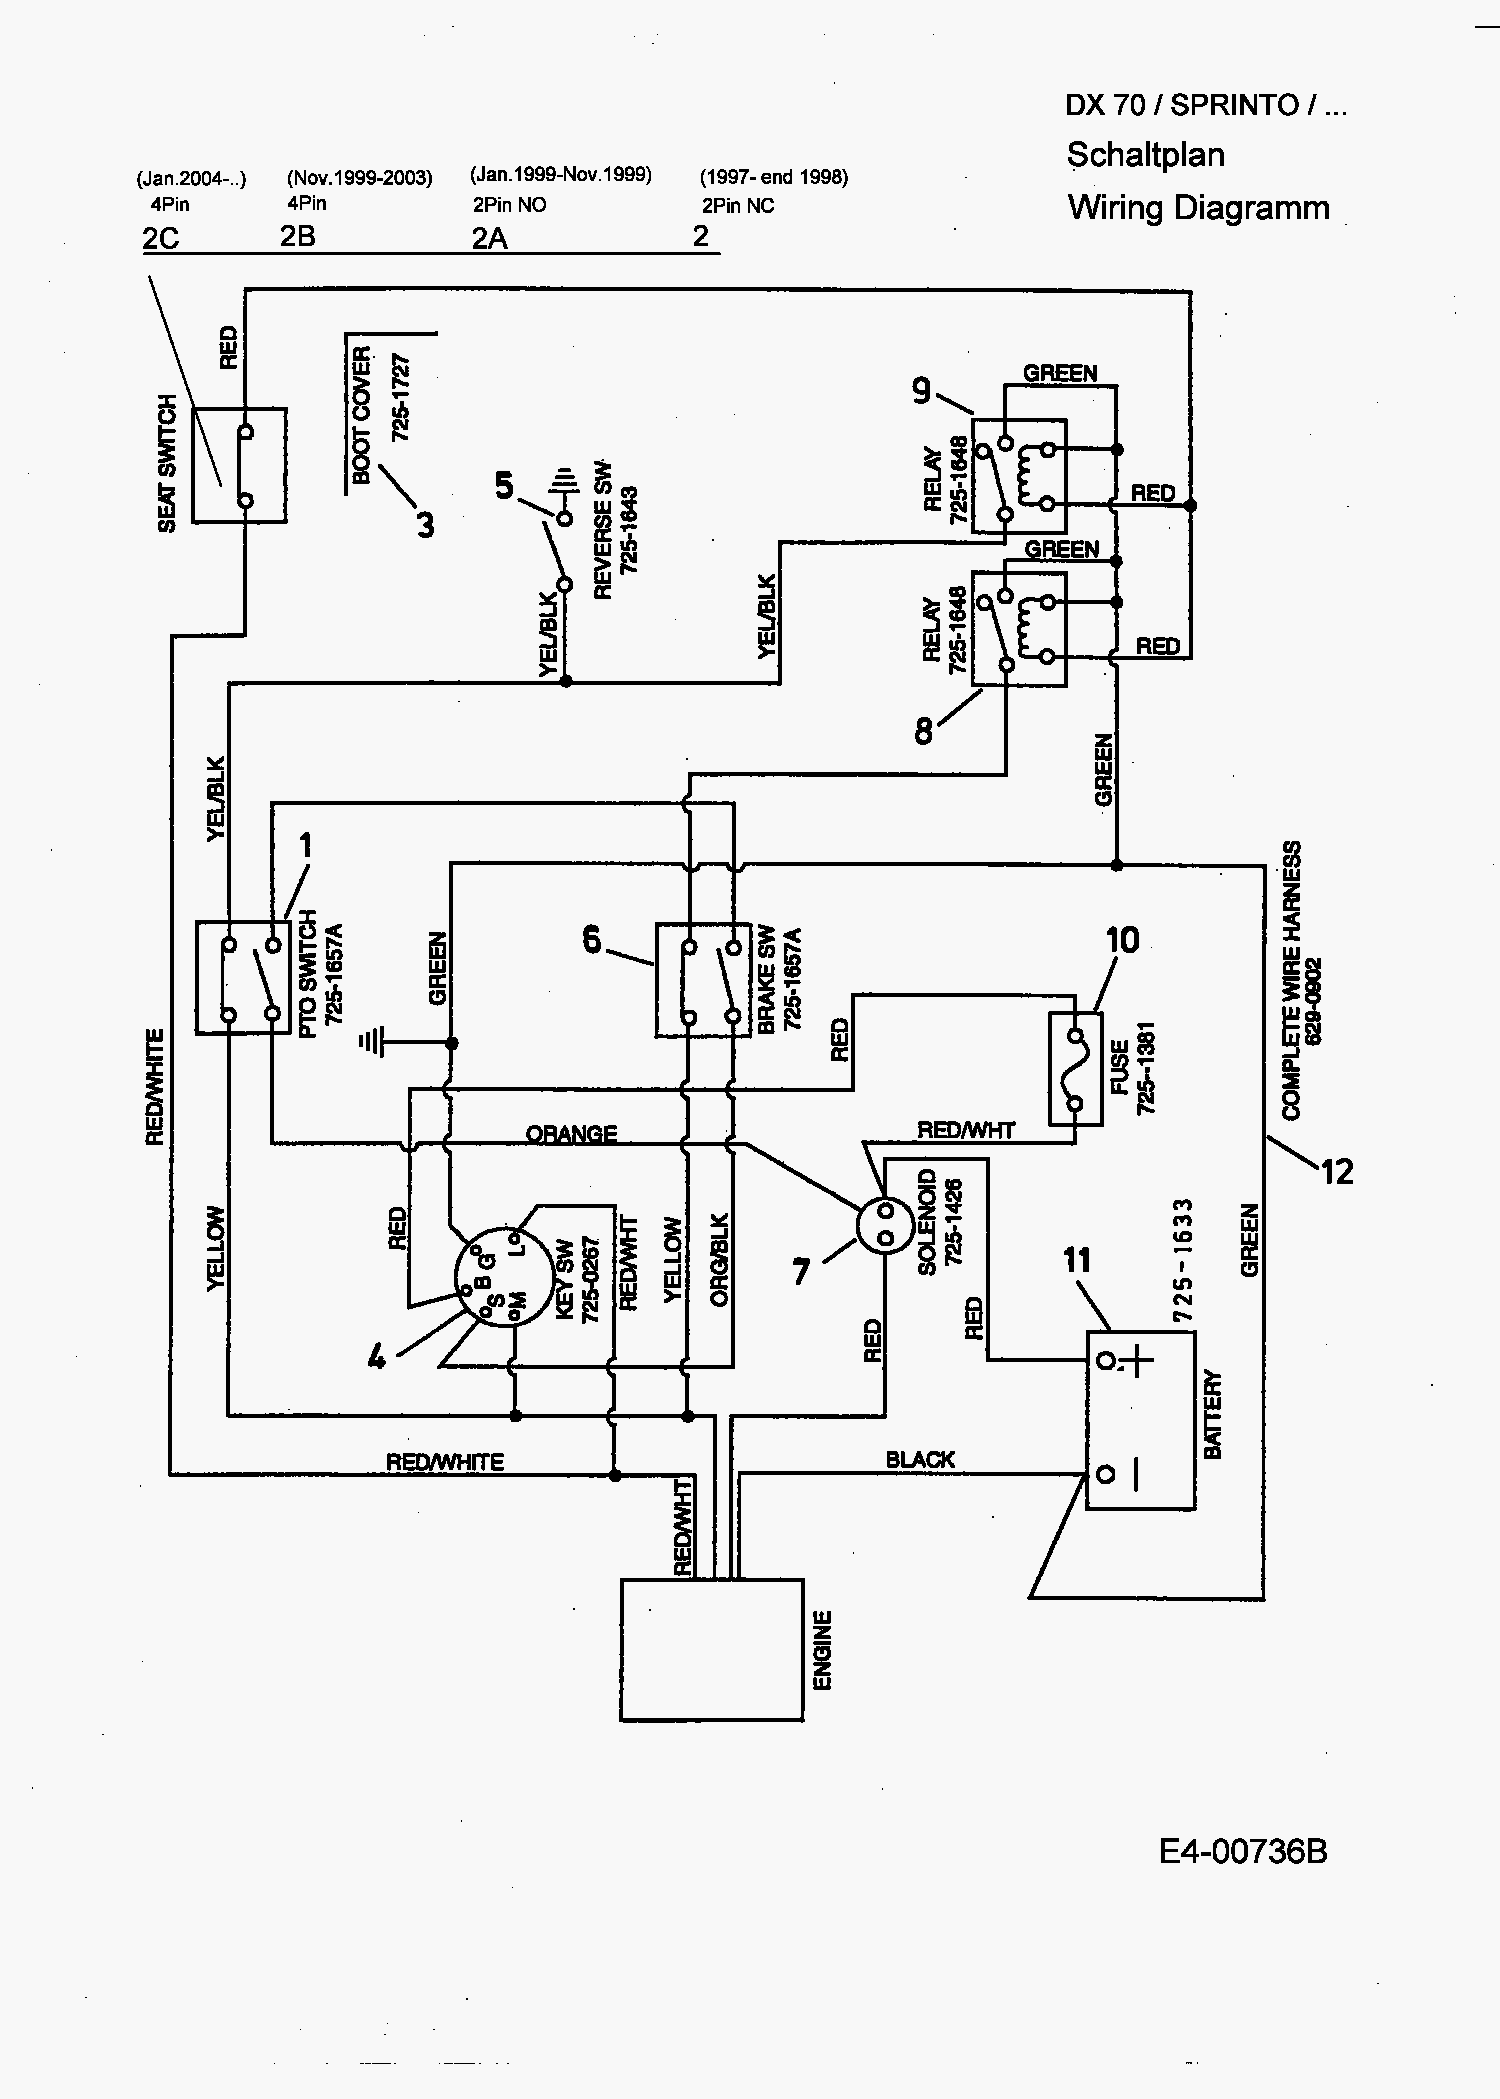 Wiring Diagram For Scotts Riding Lawn Mower